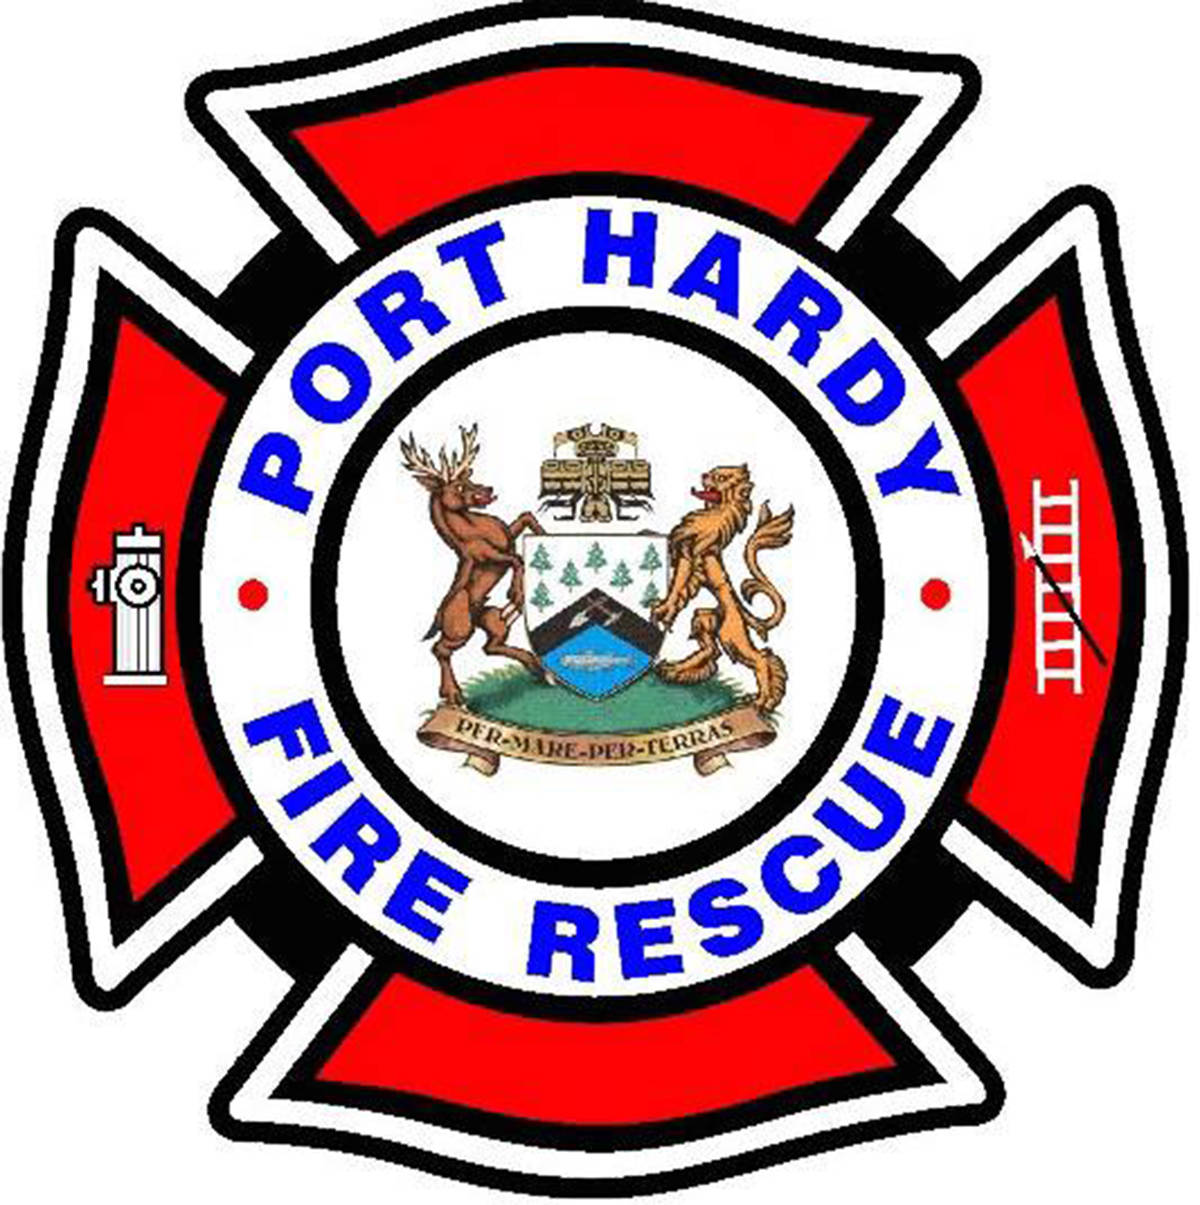 Port Hardy Fire Rescue: 50 years in the making